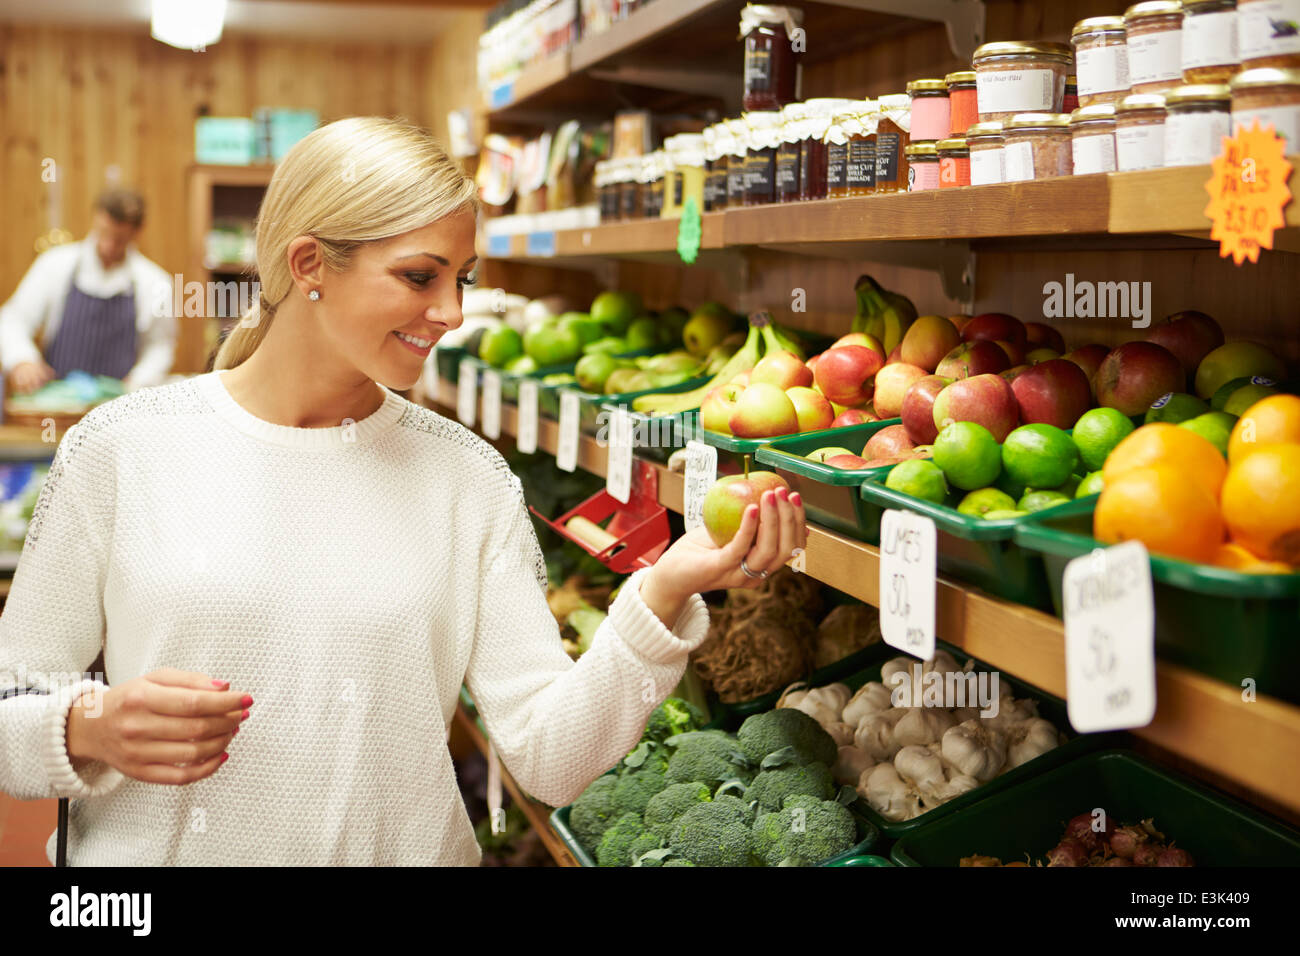 Female Customer At Vegetable Counter Of Farm Shop - Stock Image